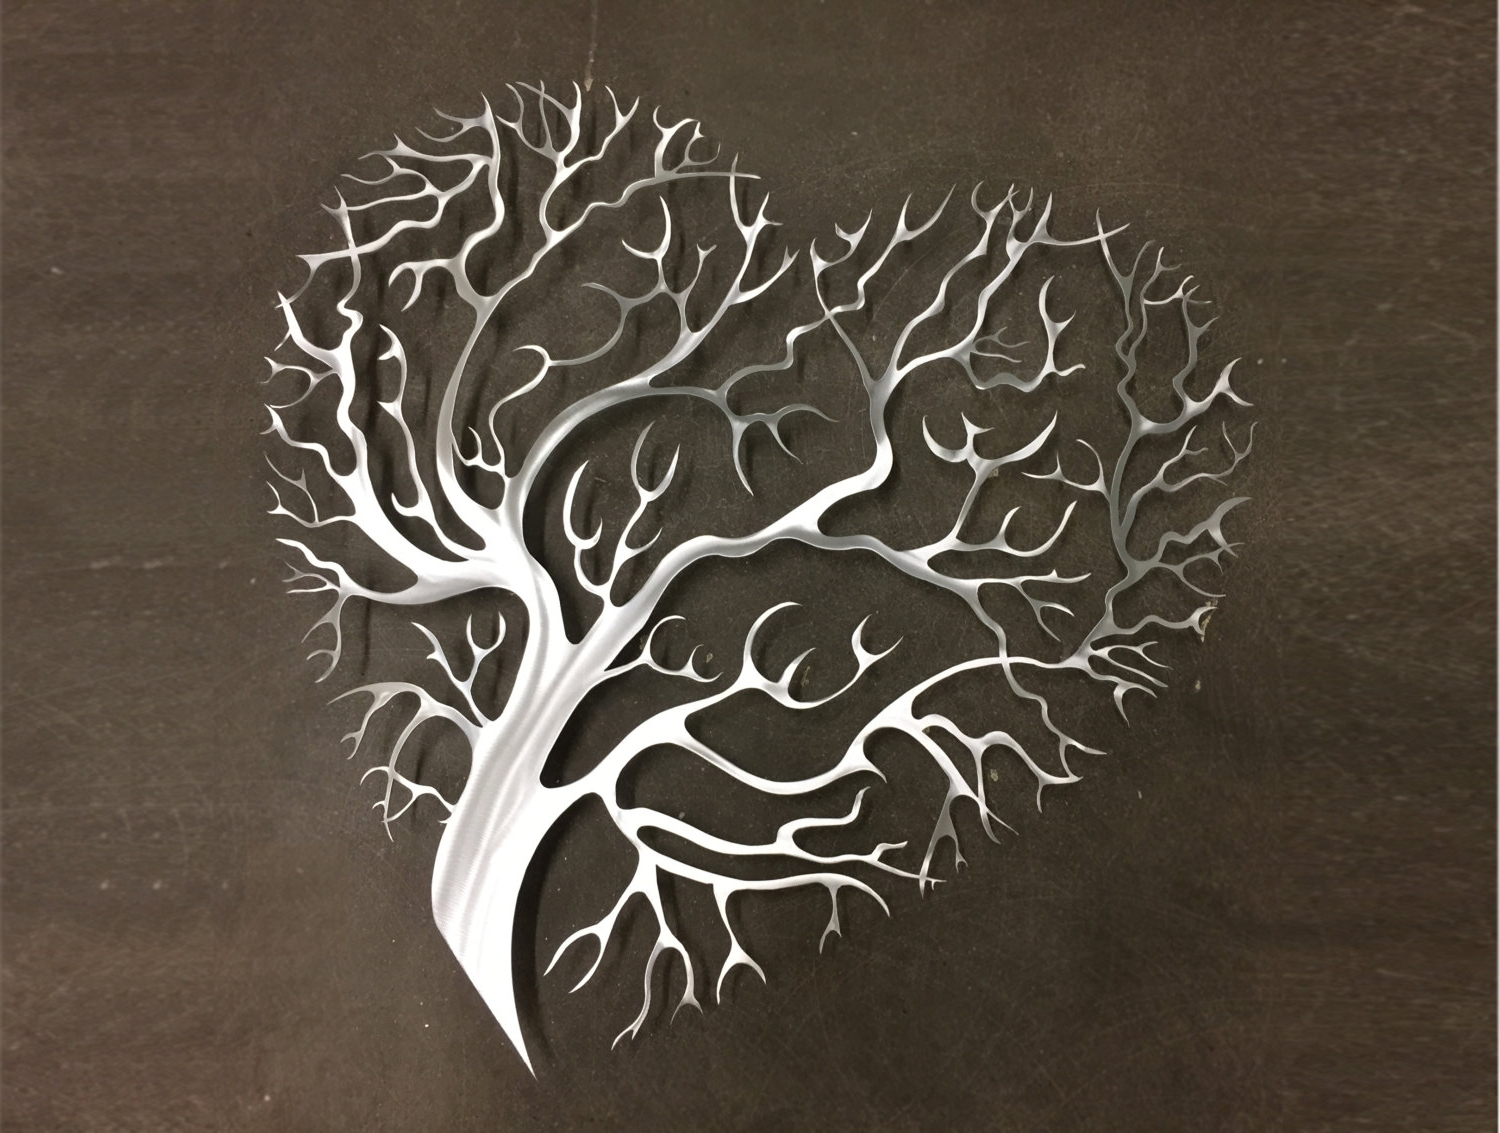 Newest Abstract Leaf Metal Wall Art Inside Wall Art Design: Iron Wall Art Decor Tree Heart Metal Wall Art (View 8 of 15)